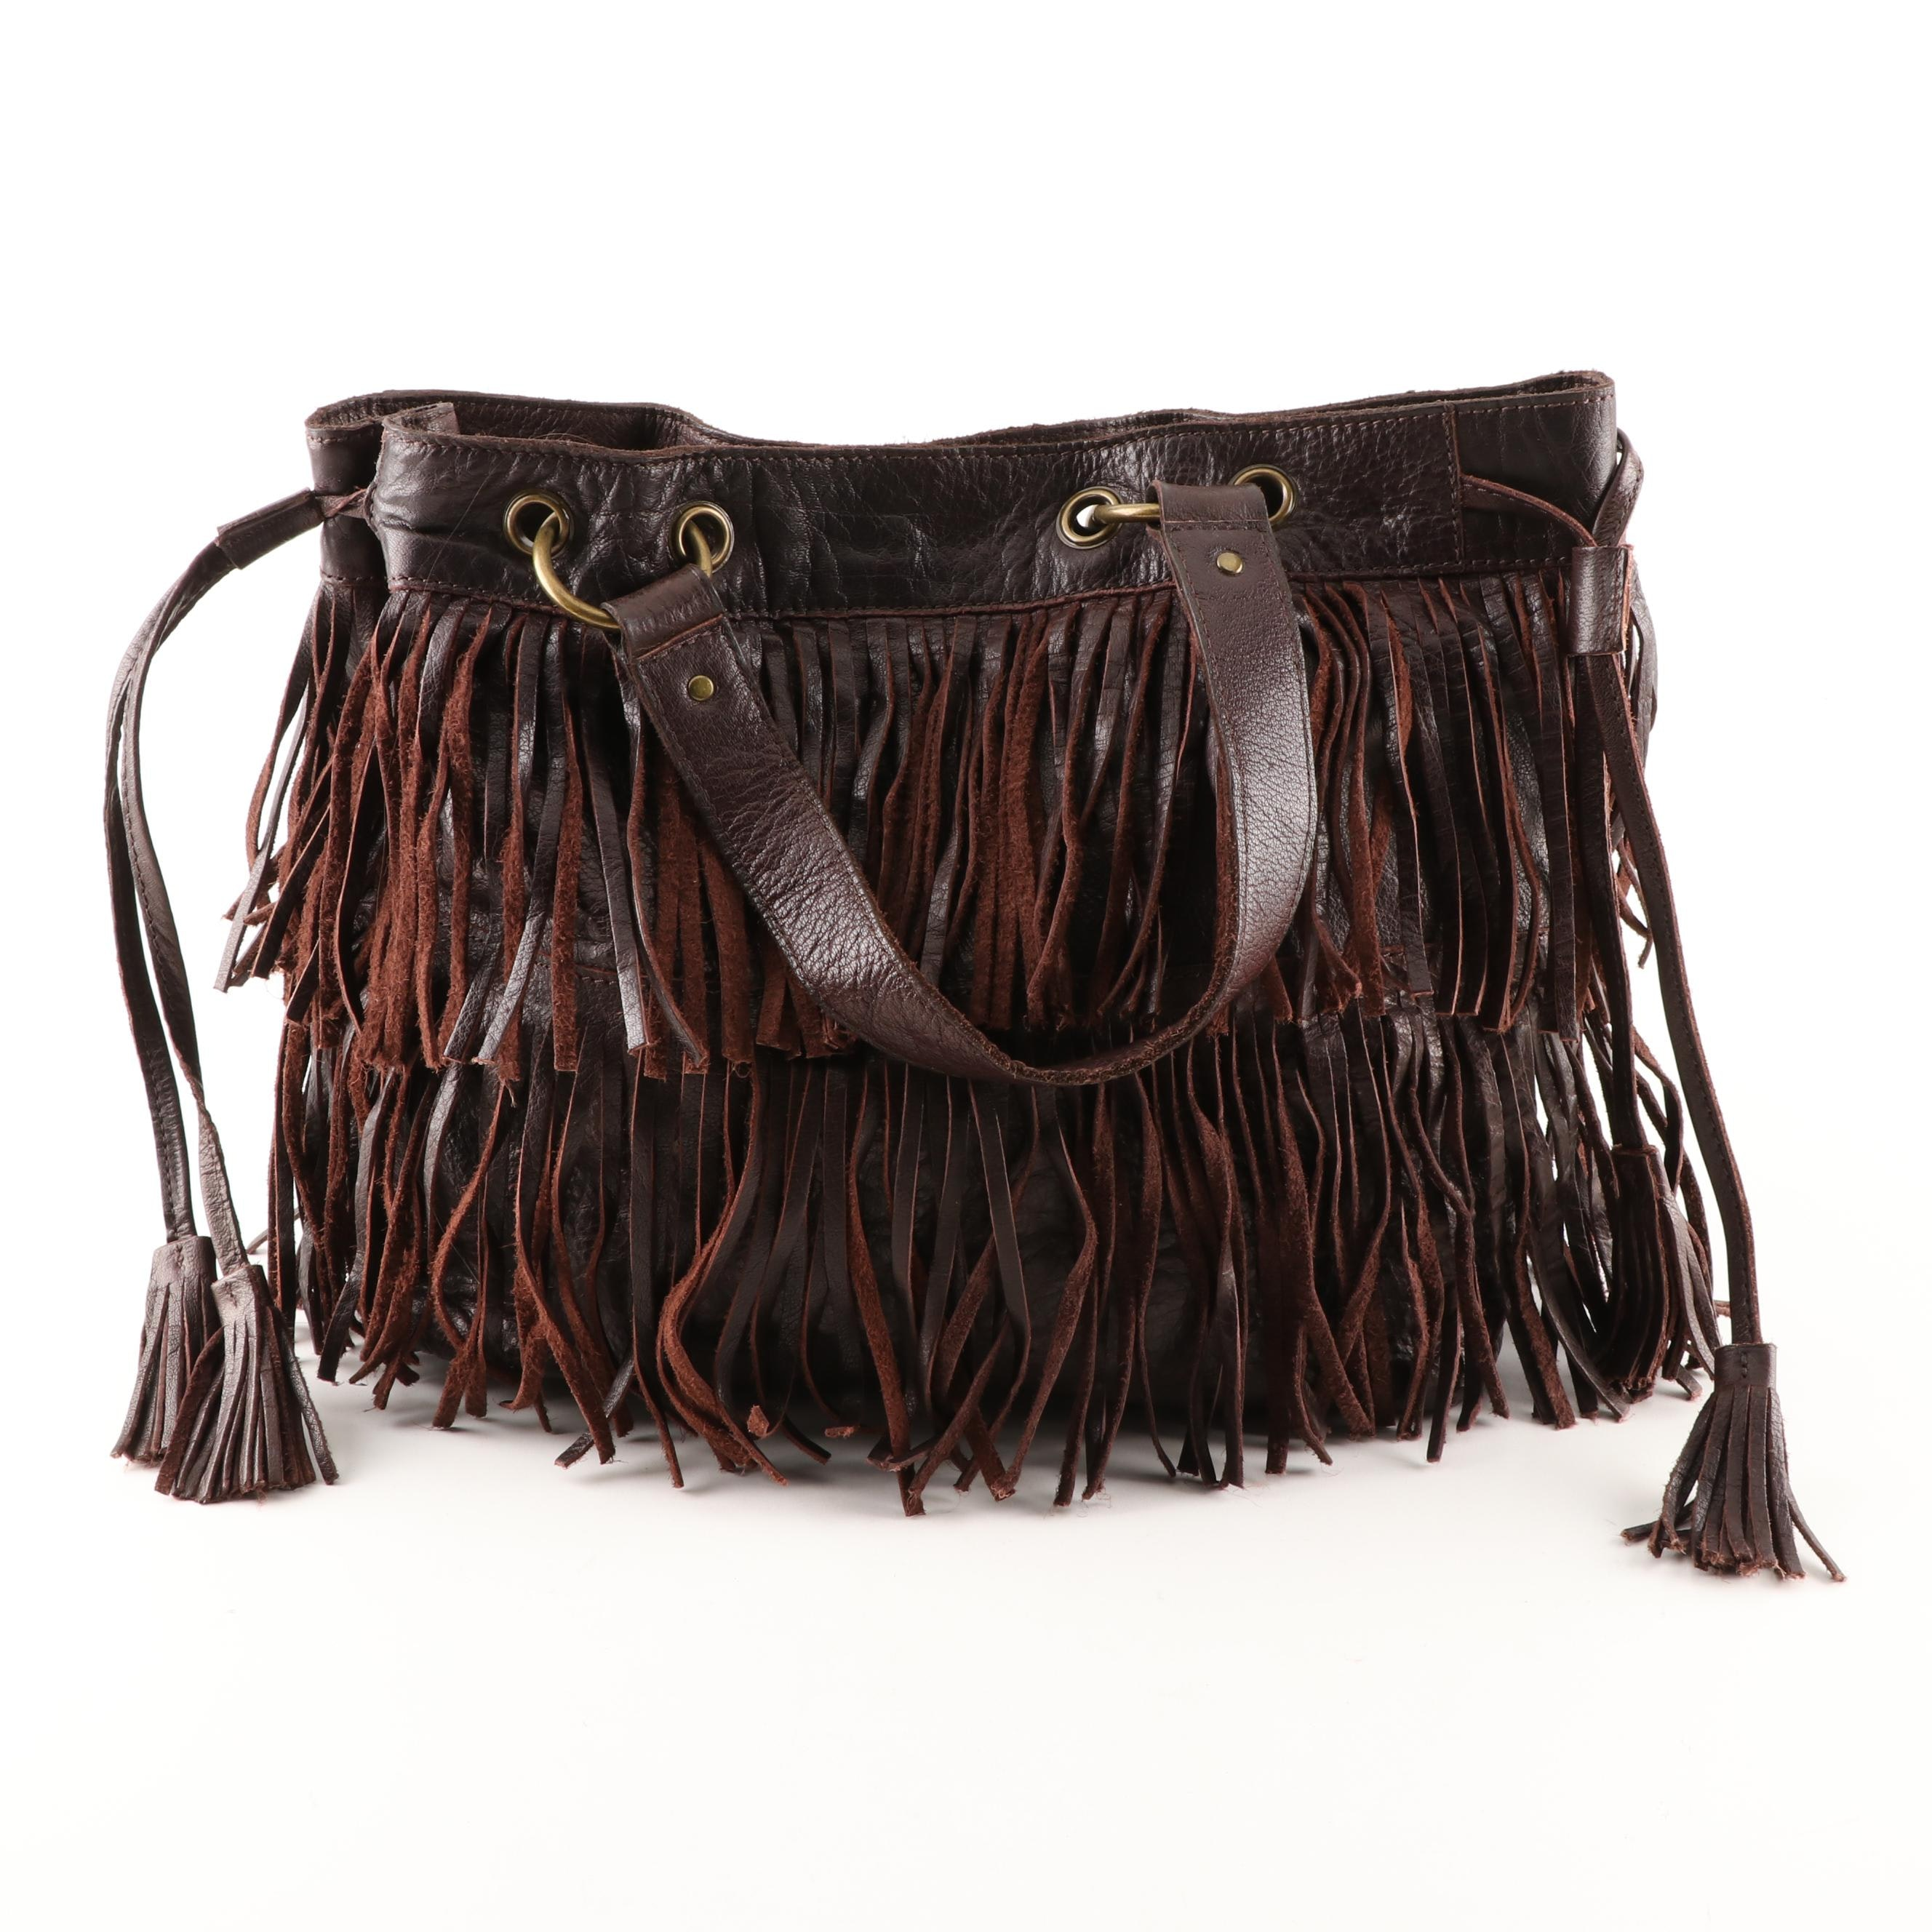 French Connection Fringed Brown Leather Tote Bag